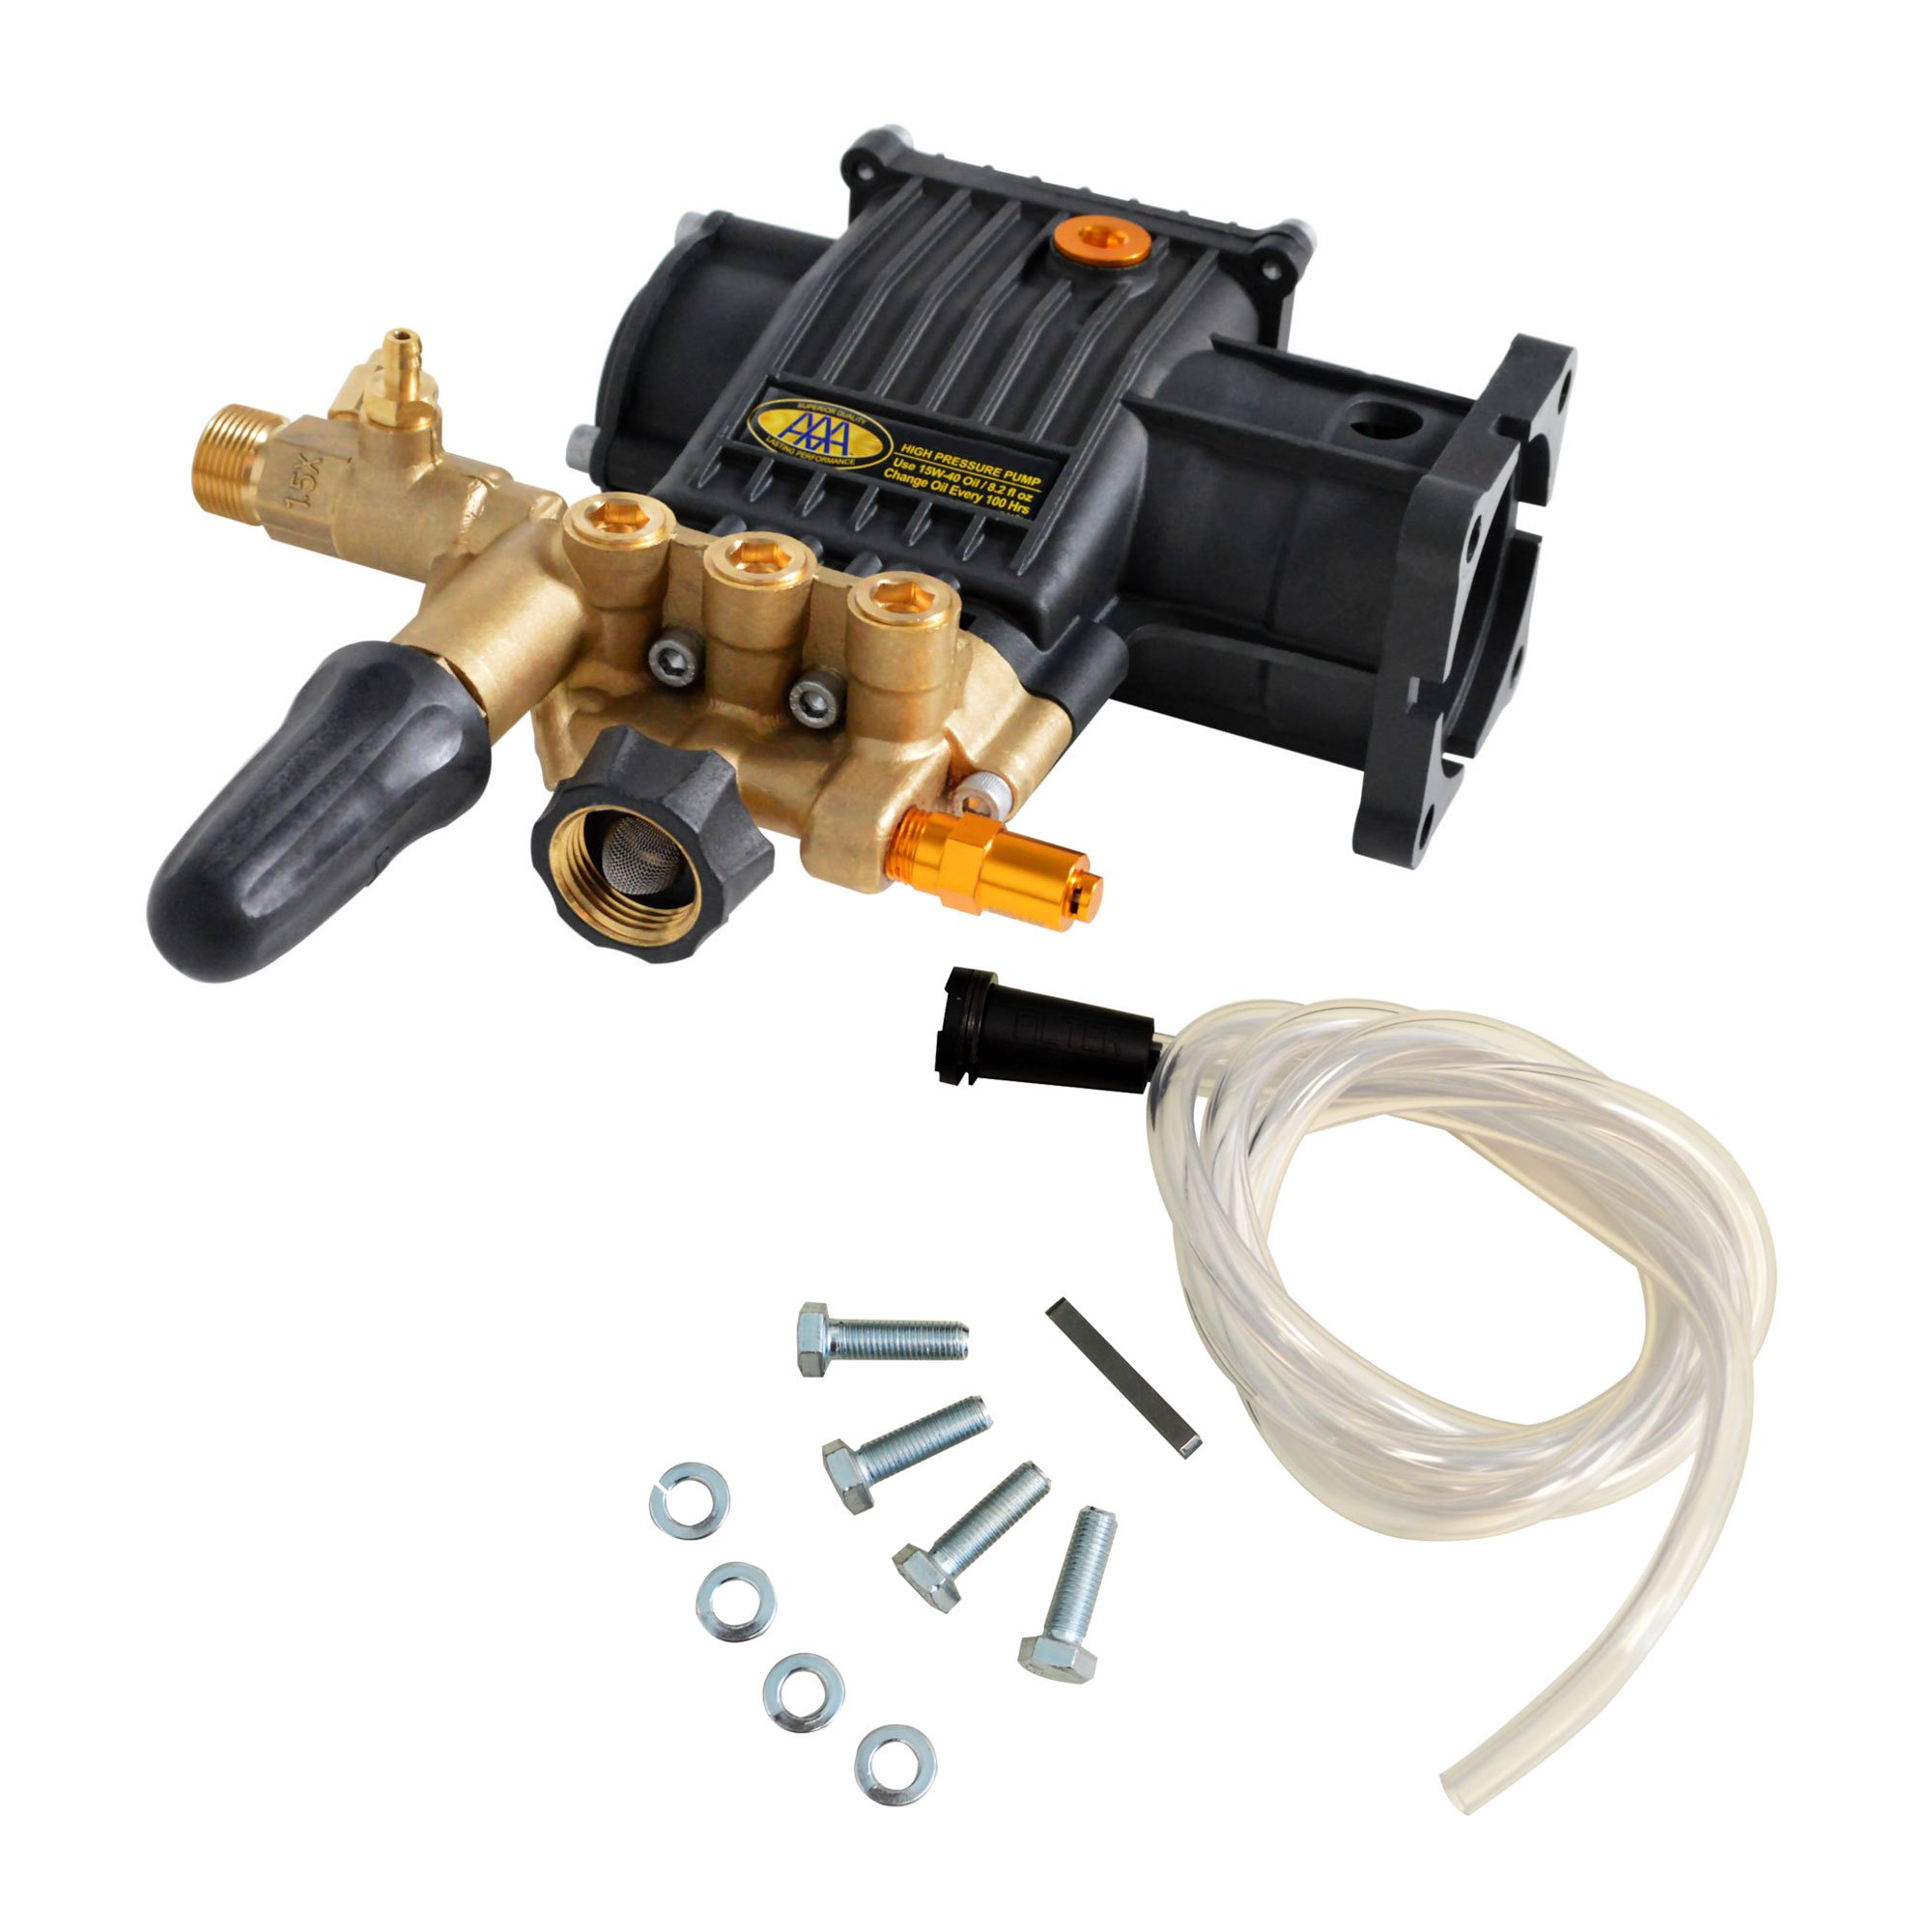 Simpson 90037 AAA Pro 3400 PSI 2.5 GPM Pressure Washer Triplex Plunger Pump Kit